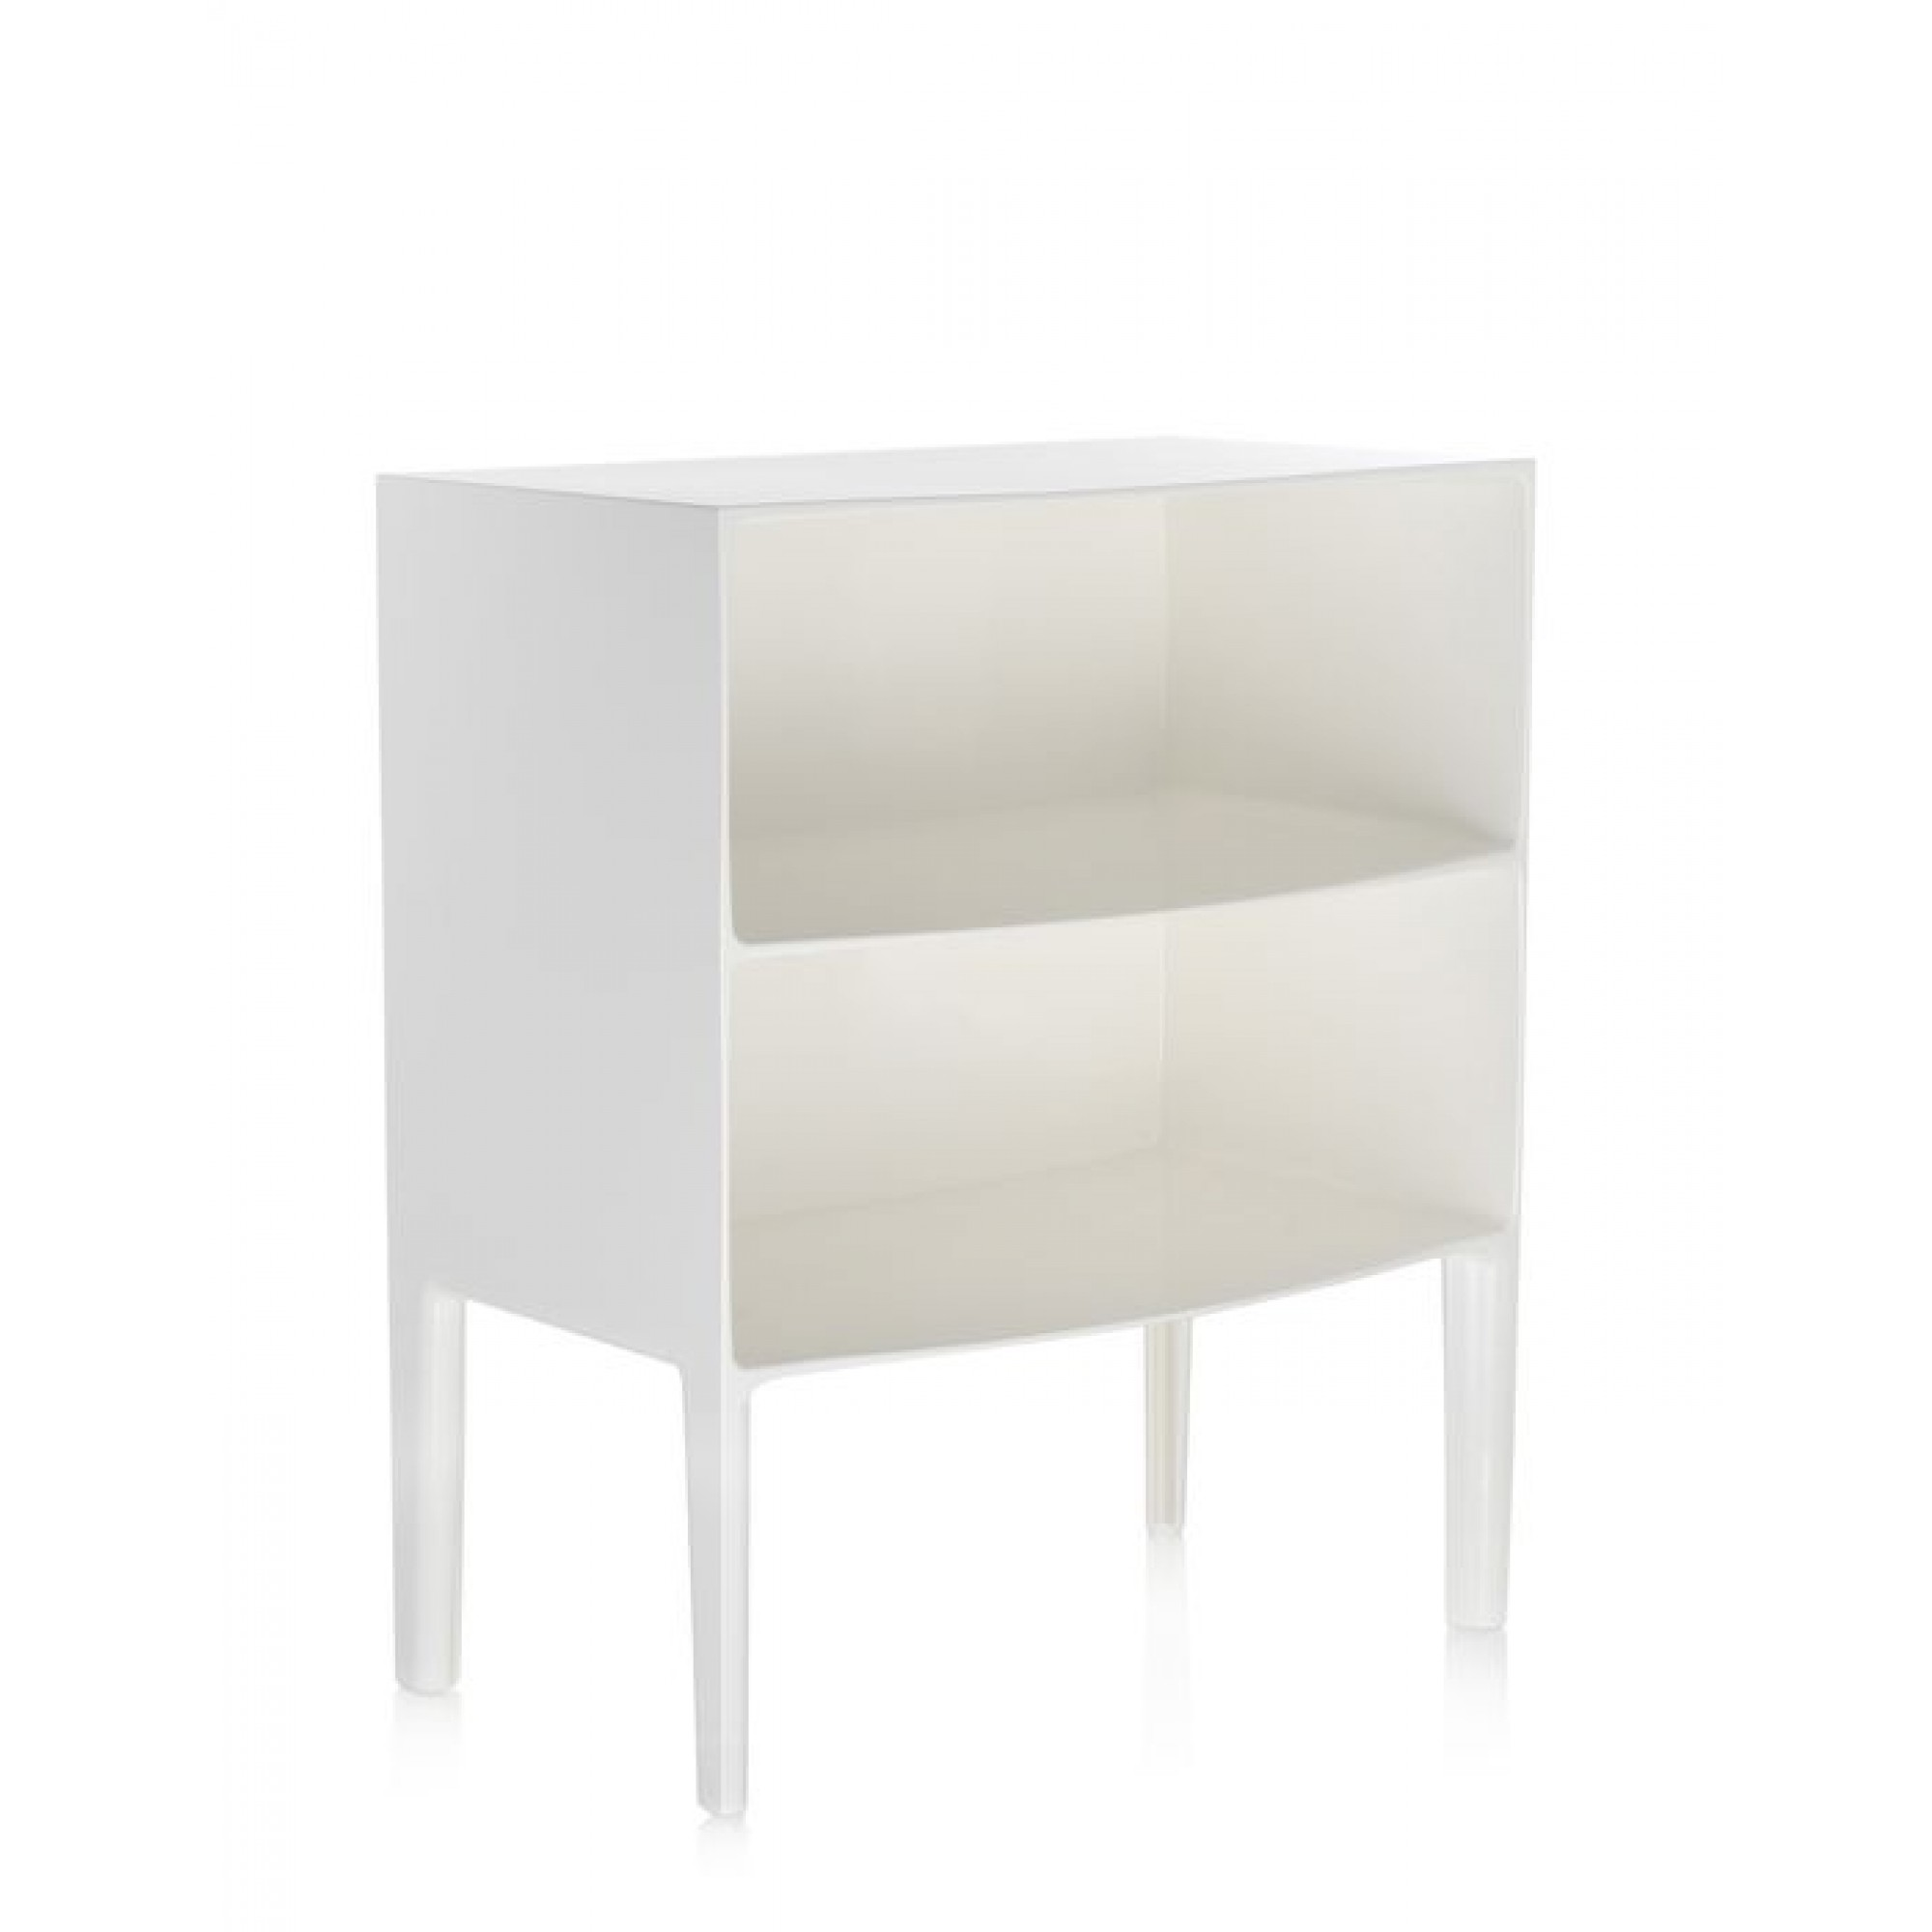 GHOST BUSTER, by KARTELL